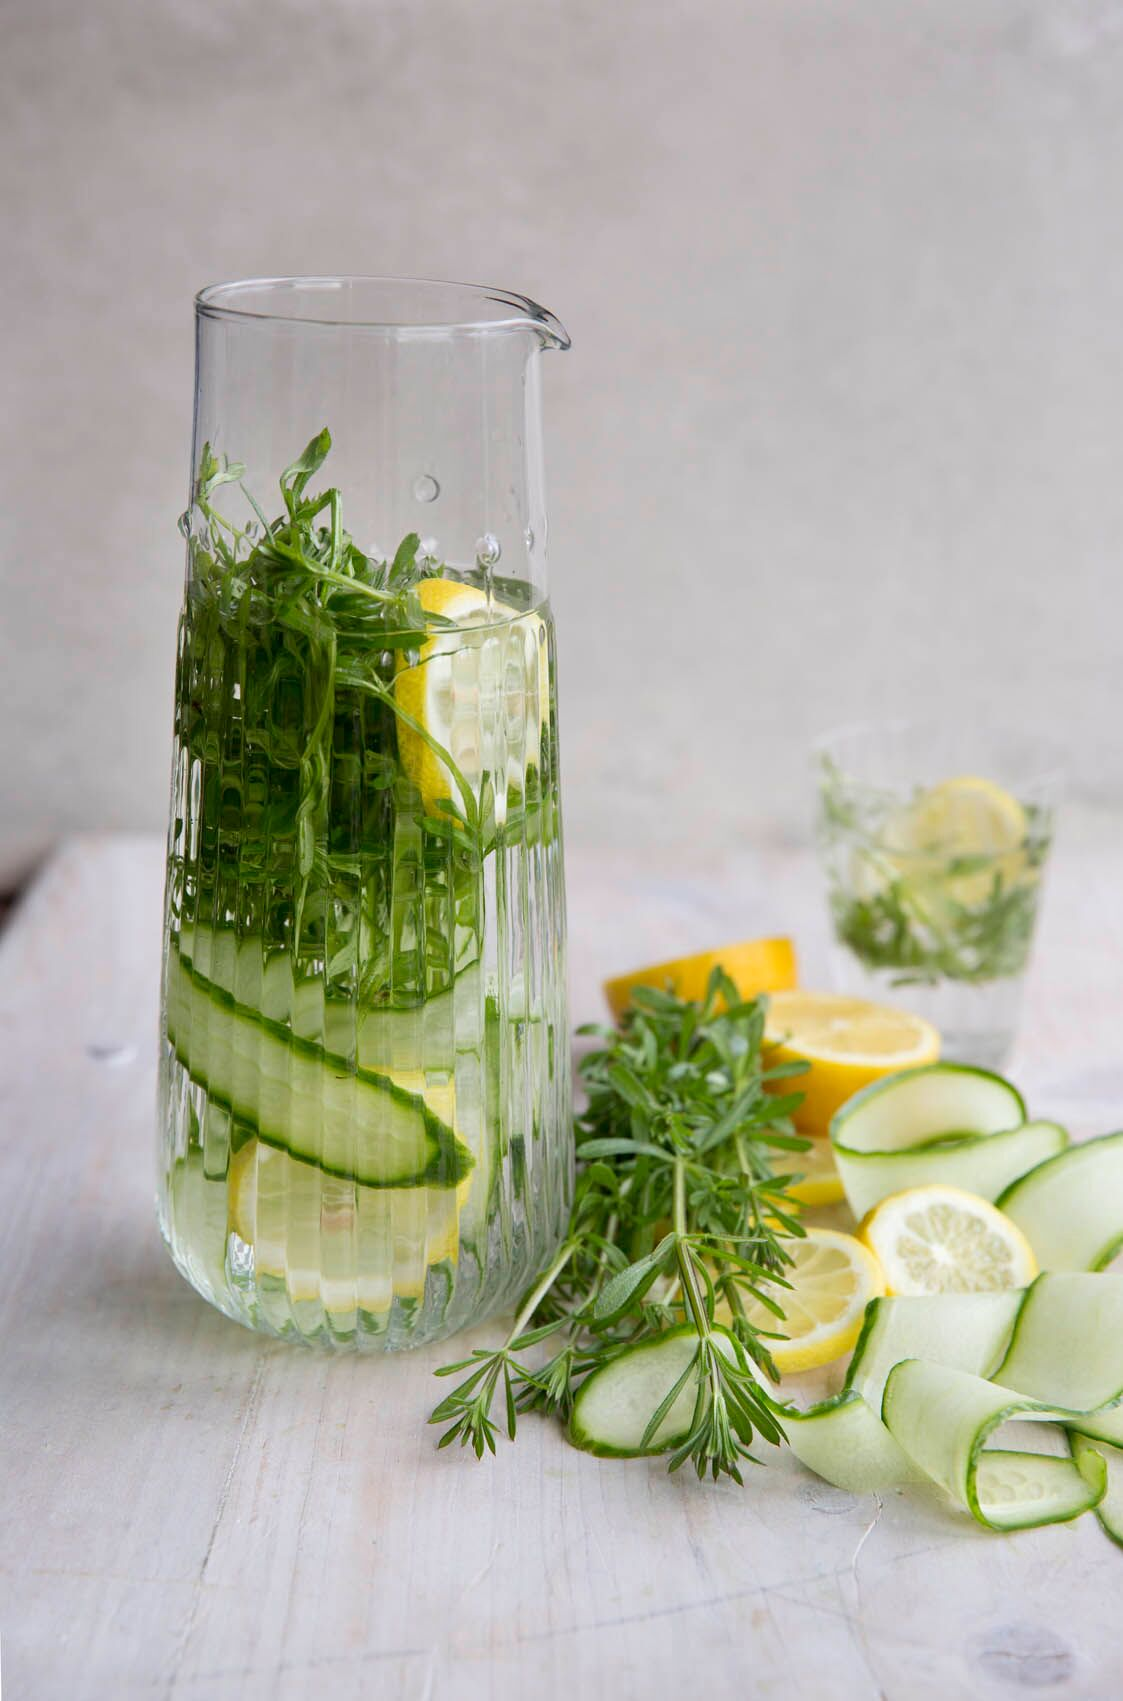 Cleavers cold infusion, even better with lemon and cucumber (C) Kyle Books/Sarah Cuttle